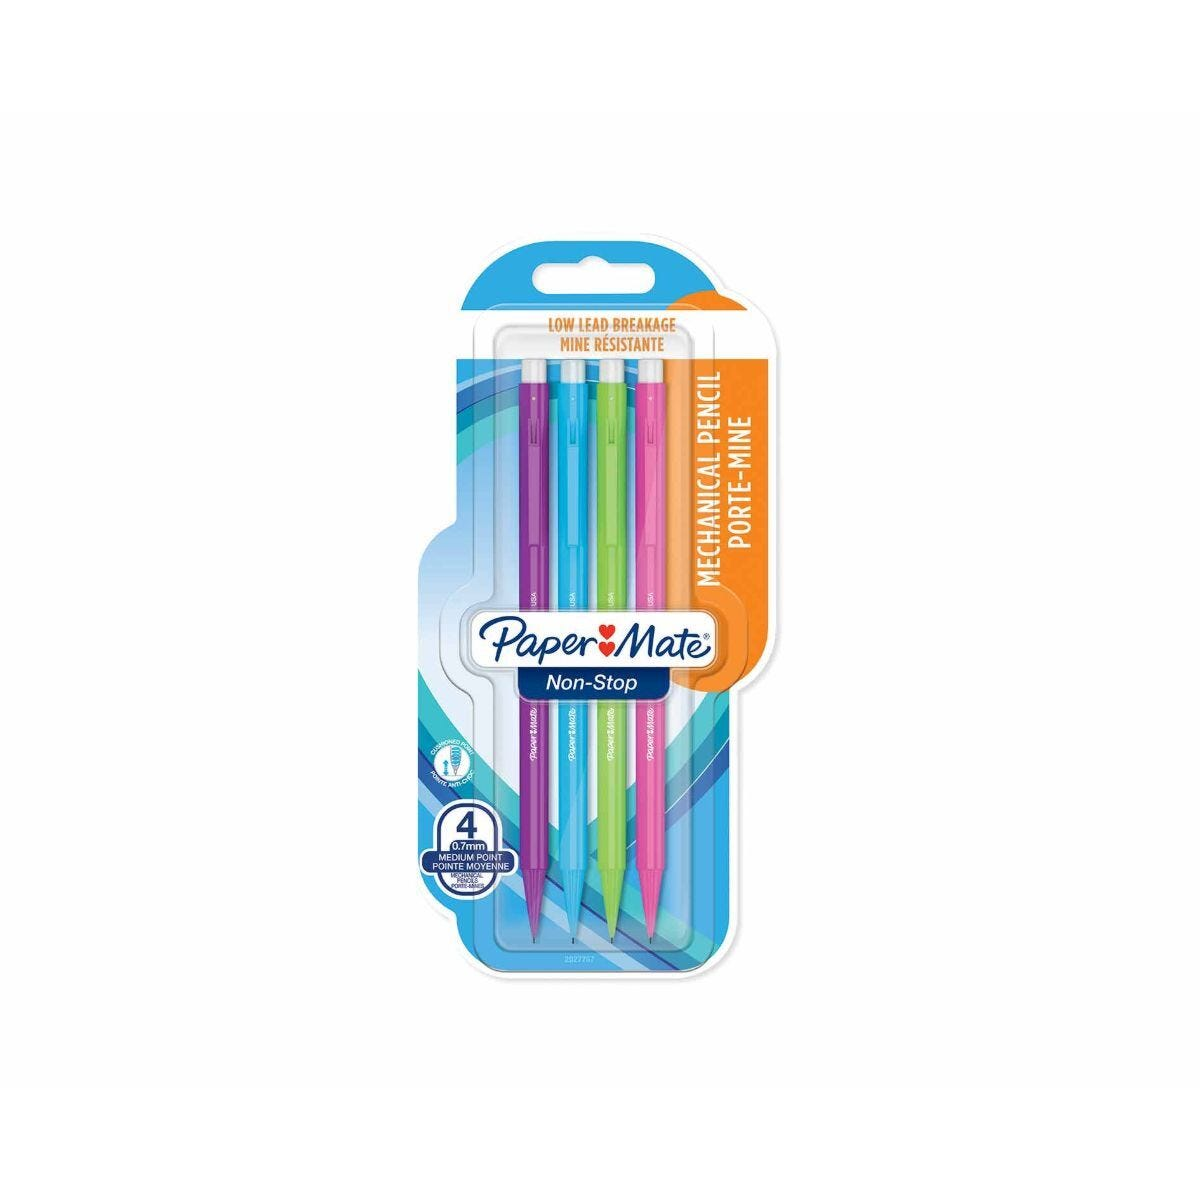 Paper Mate Mechanical Pencils 0.7mm  Pack of 4